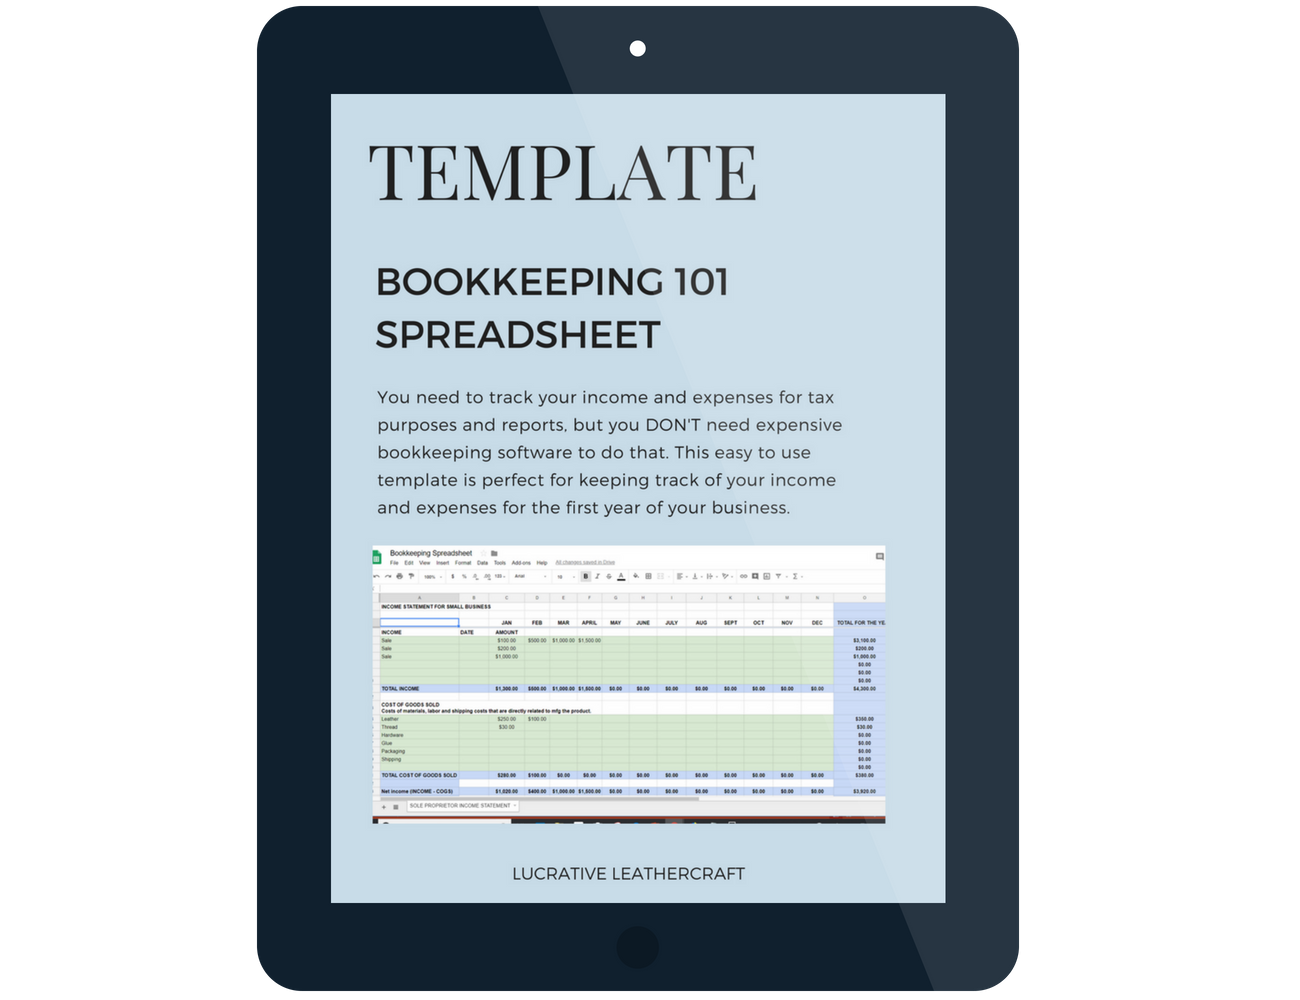 Use this easy to use template to track your income and expenses instead of using expensive and complex bookkeeping software.